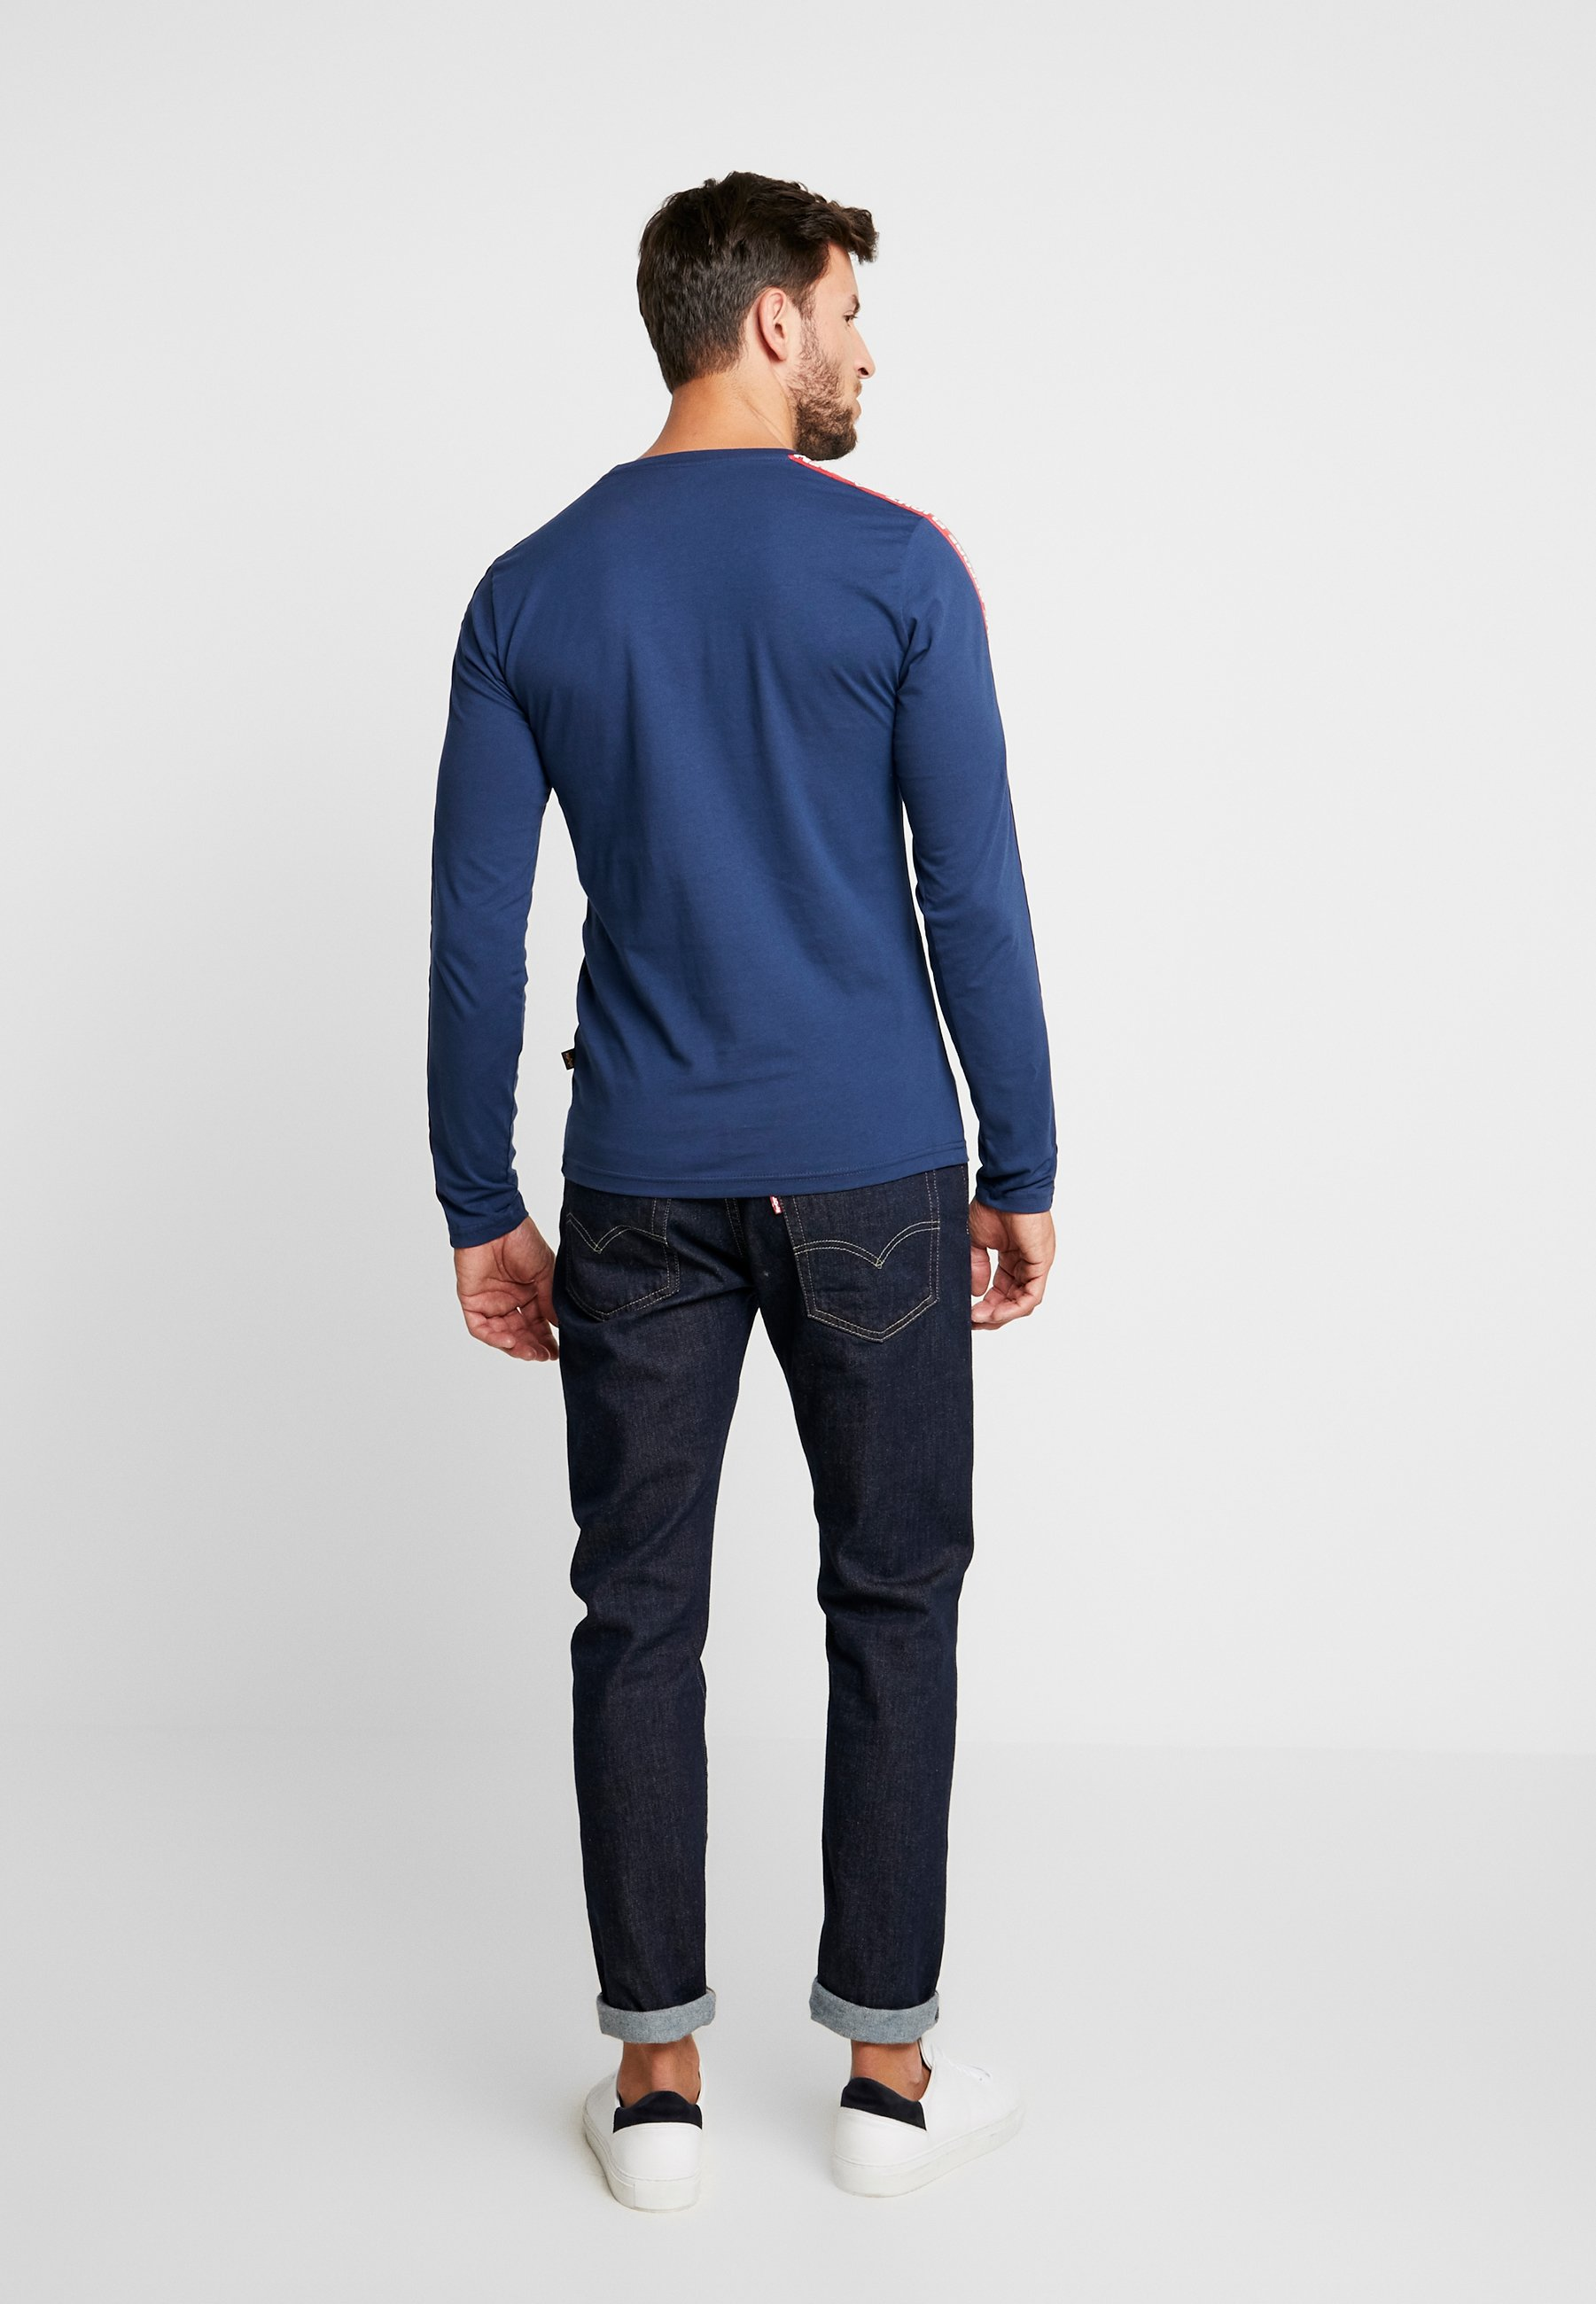 Industries À shirt Alpha New TapeT Longues Navy Manches 7gyb6fY